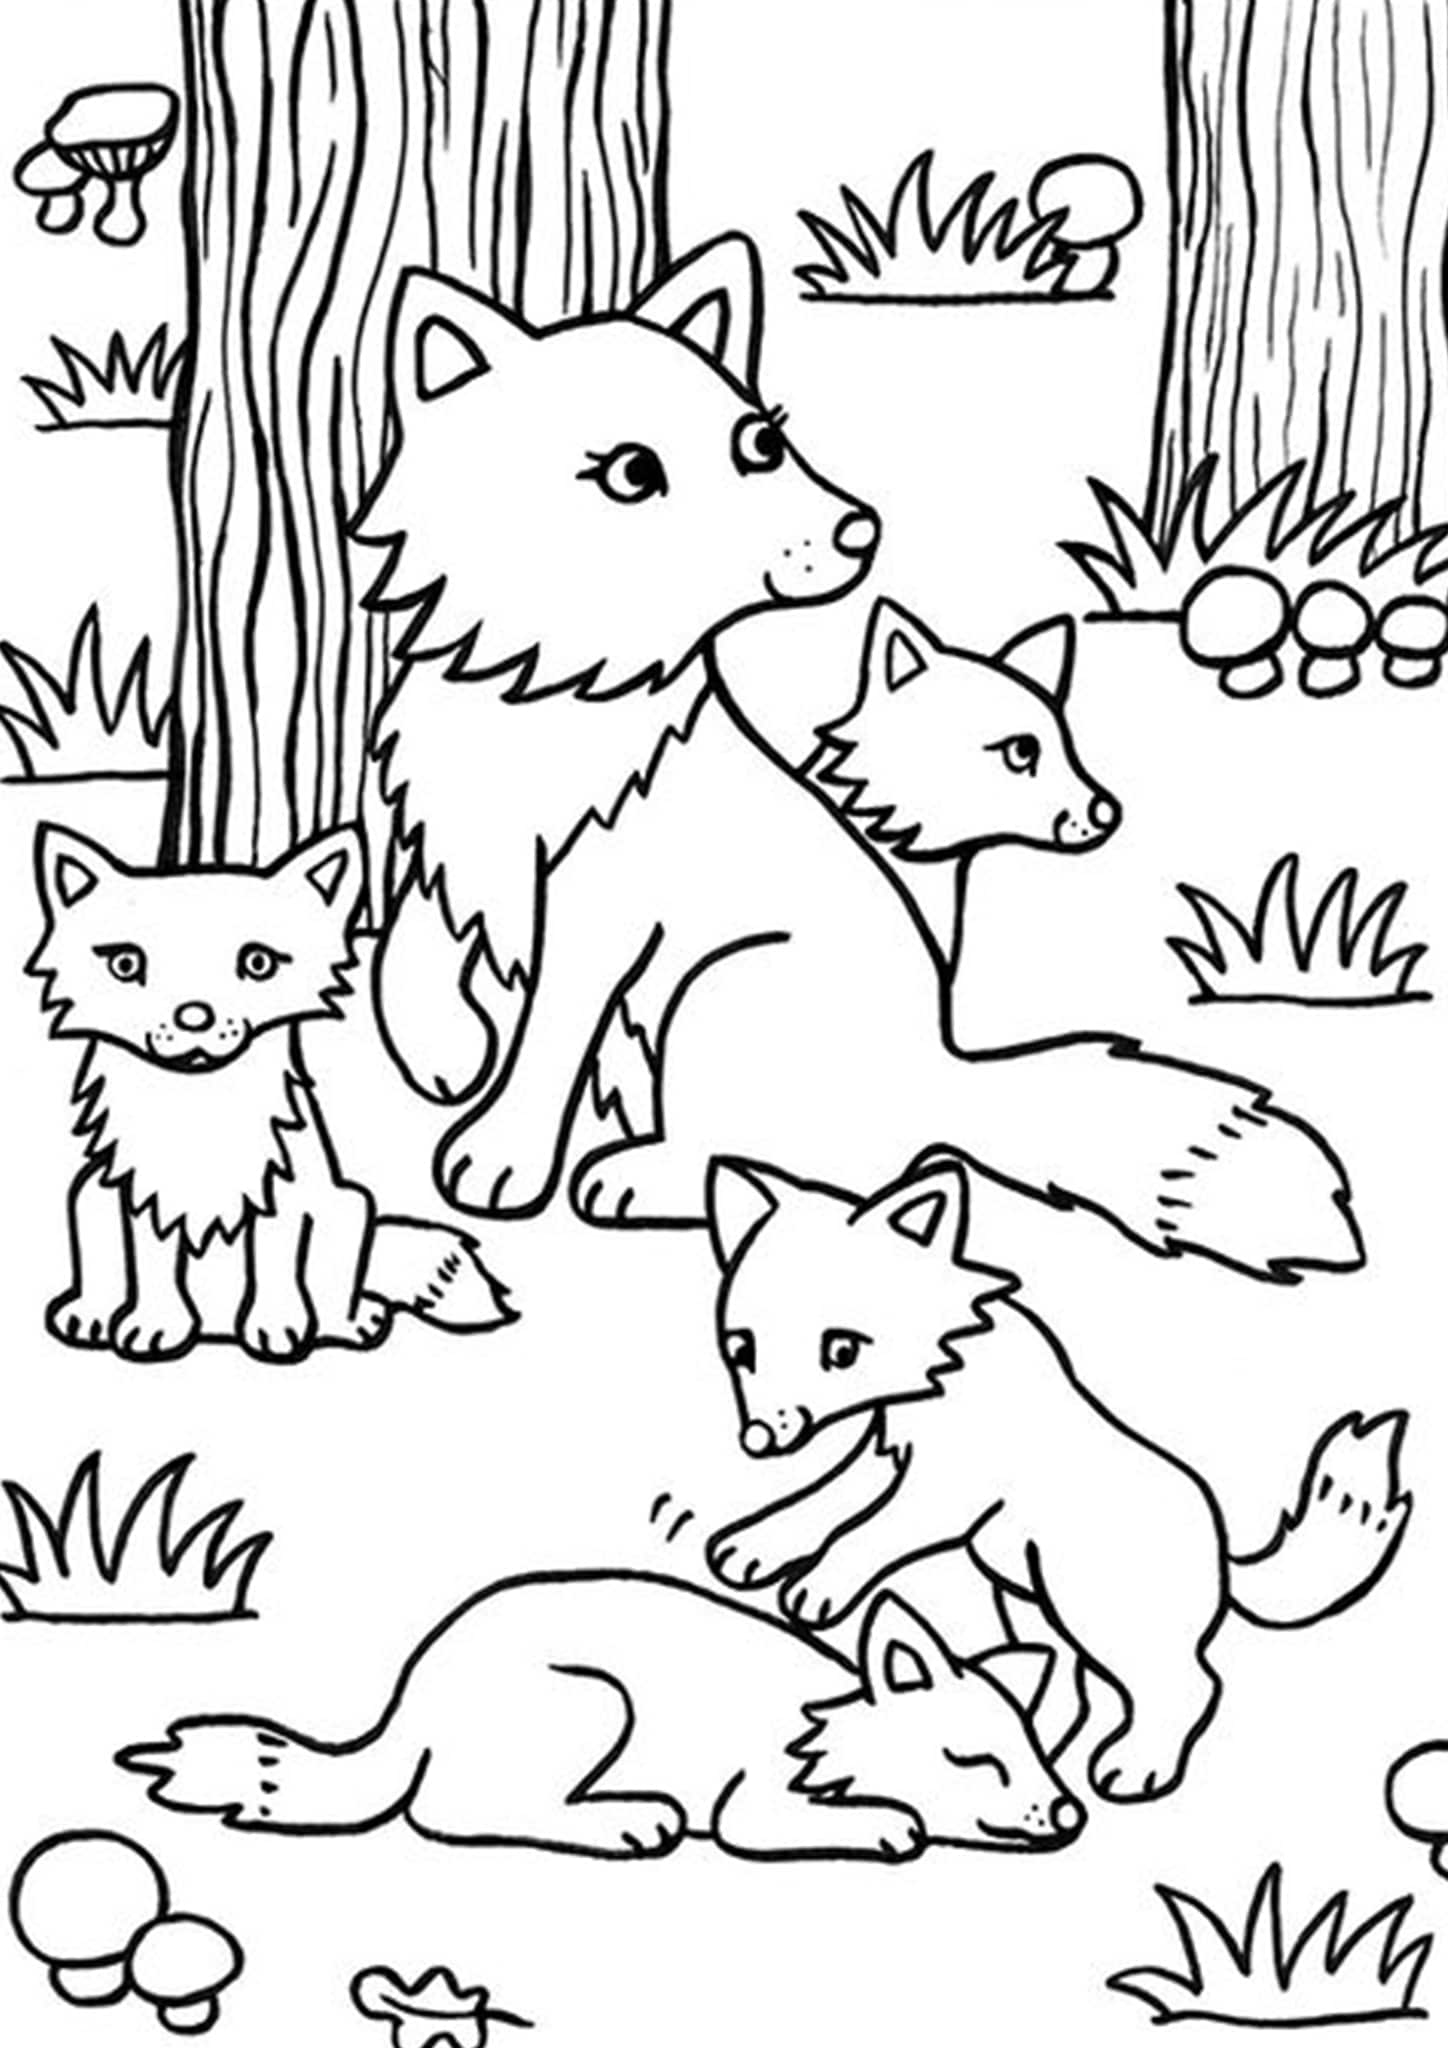 Free & Easy To Print Fox Coloring Pages - Tulamama